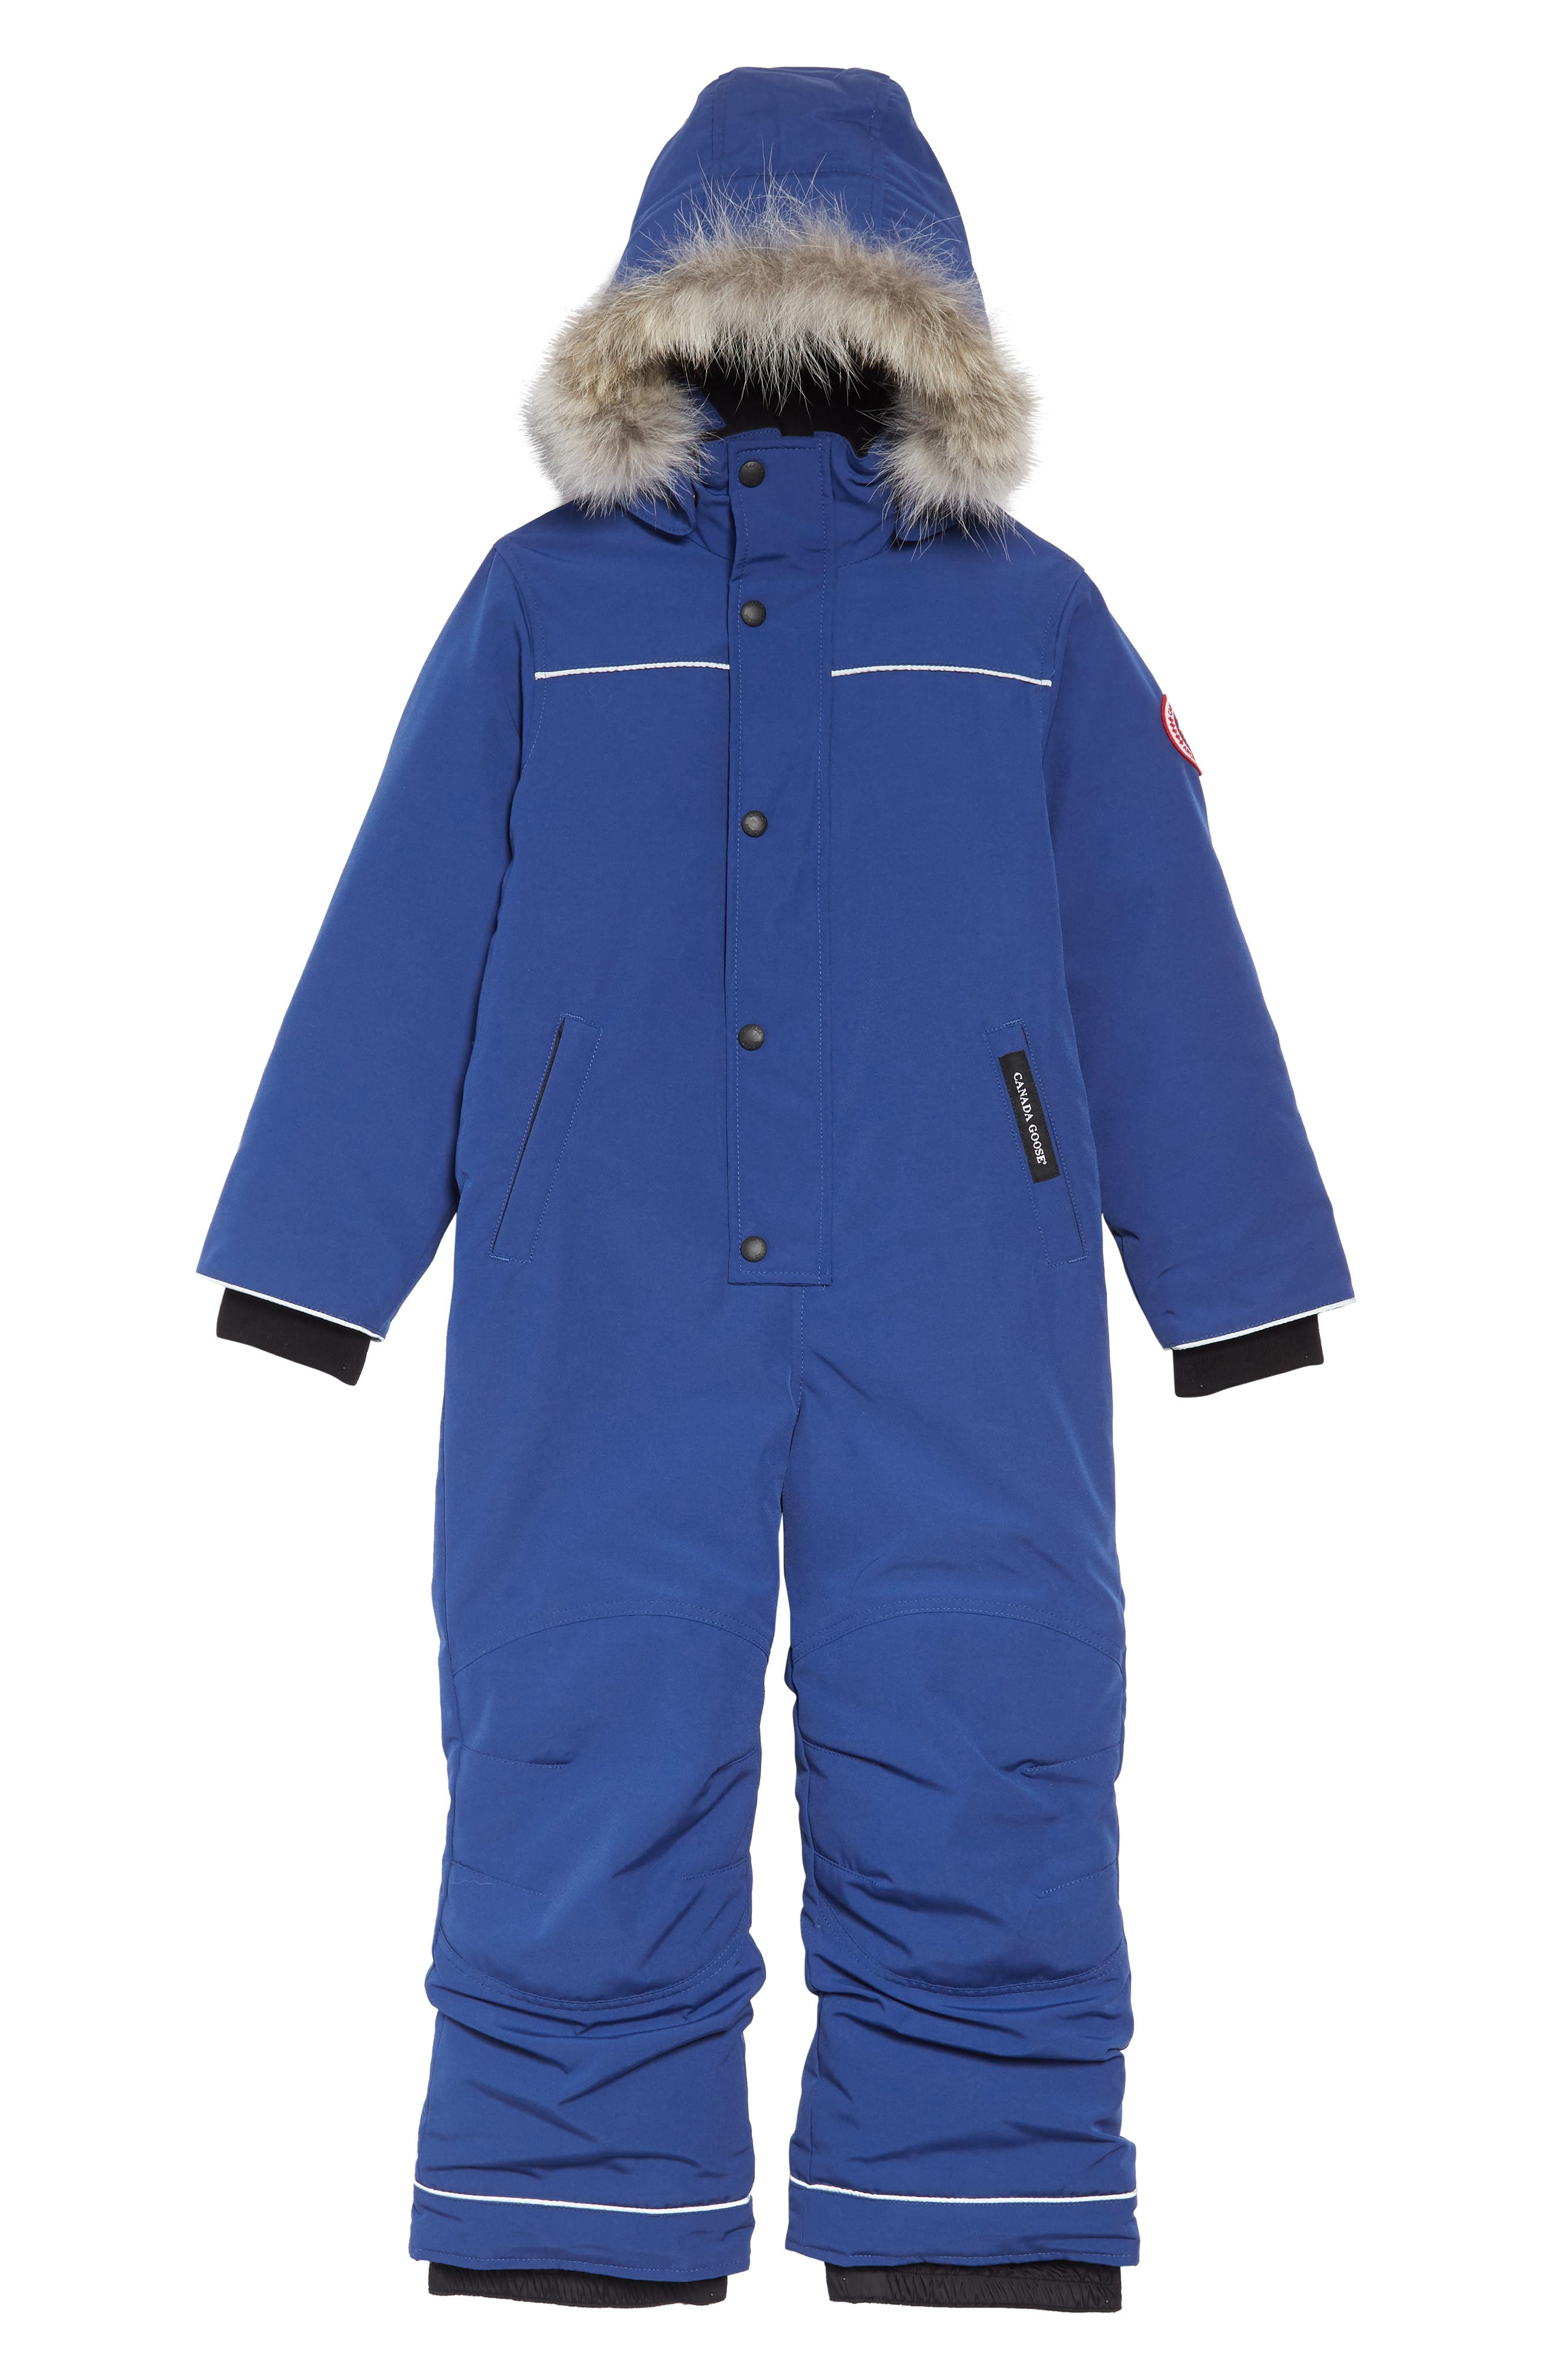 Kids' Clothing, Shoes & Accs Boys Next Blue Hat With Faux Fur Trim Age 1-2 Years